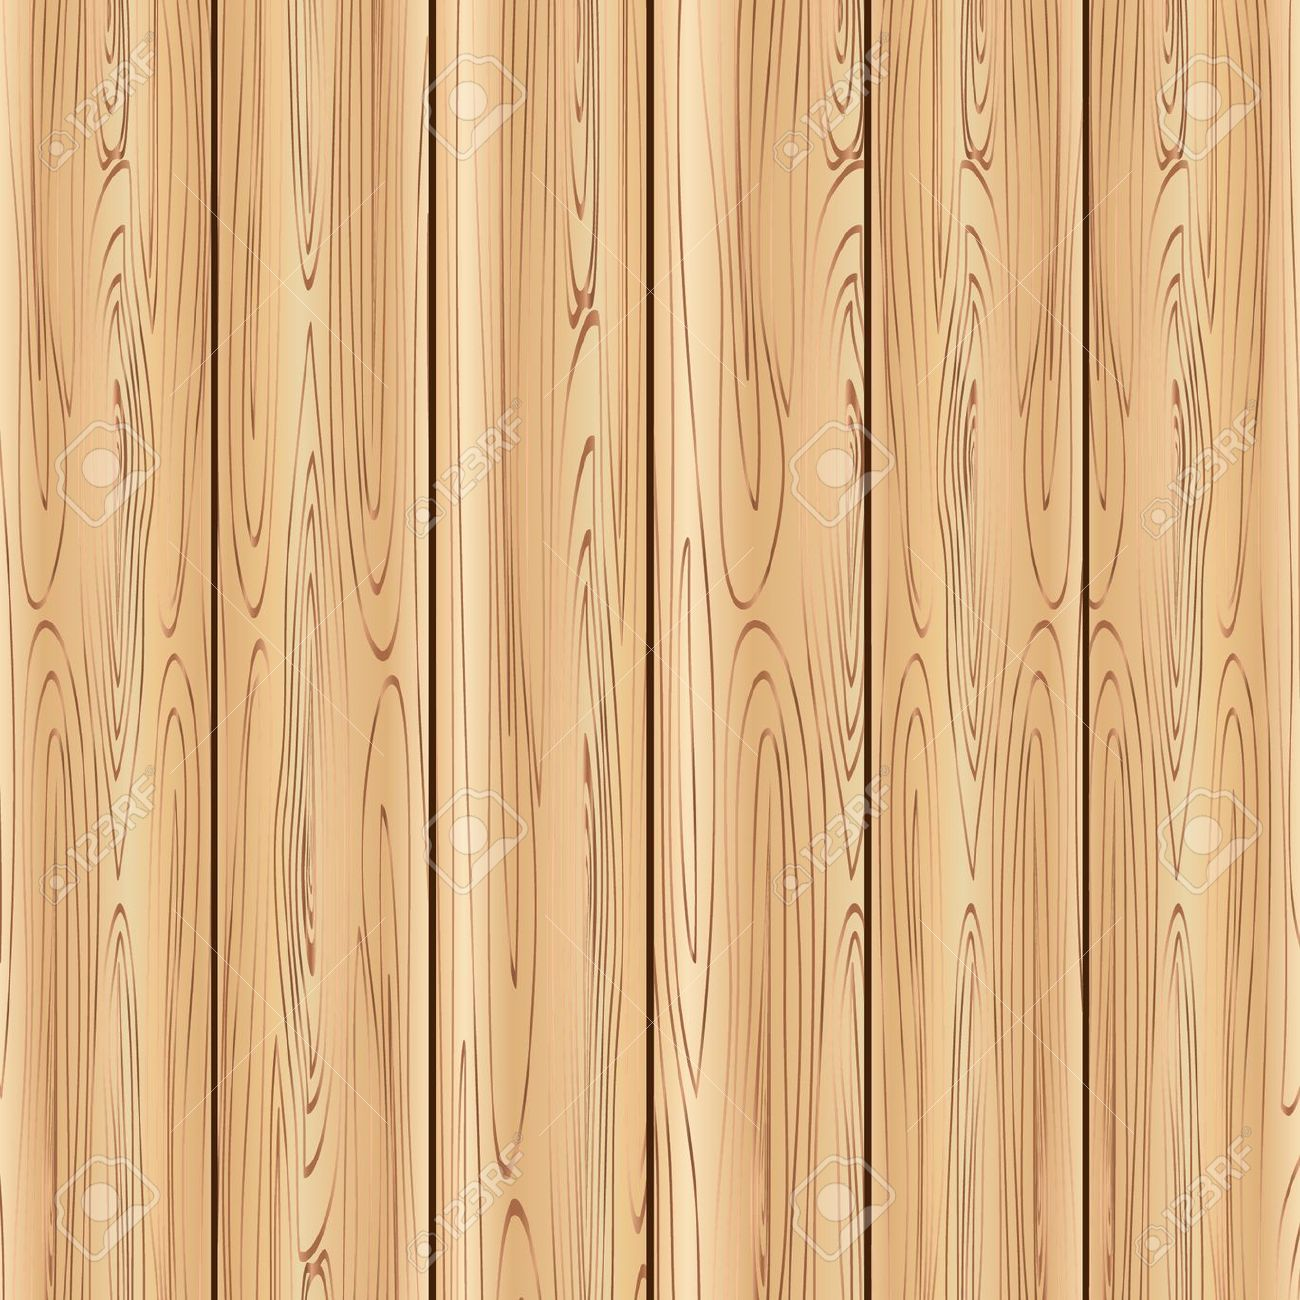 Wood paneling clipart clipground - Wood panel artwork ...